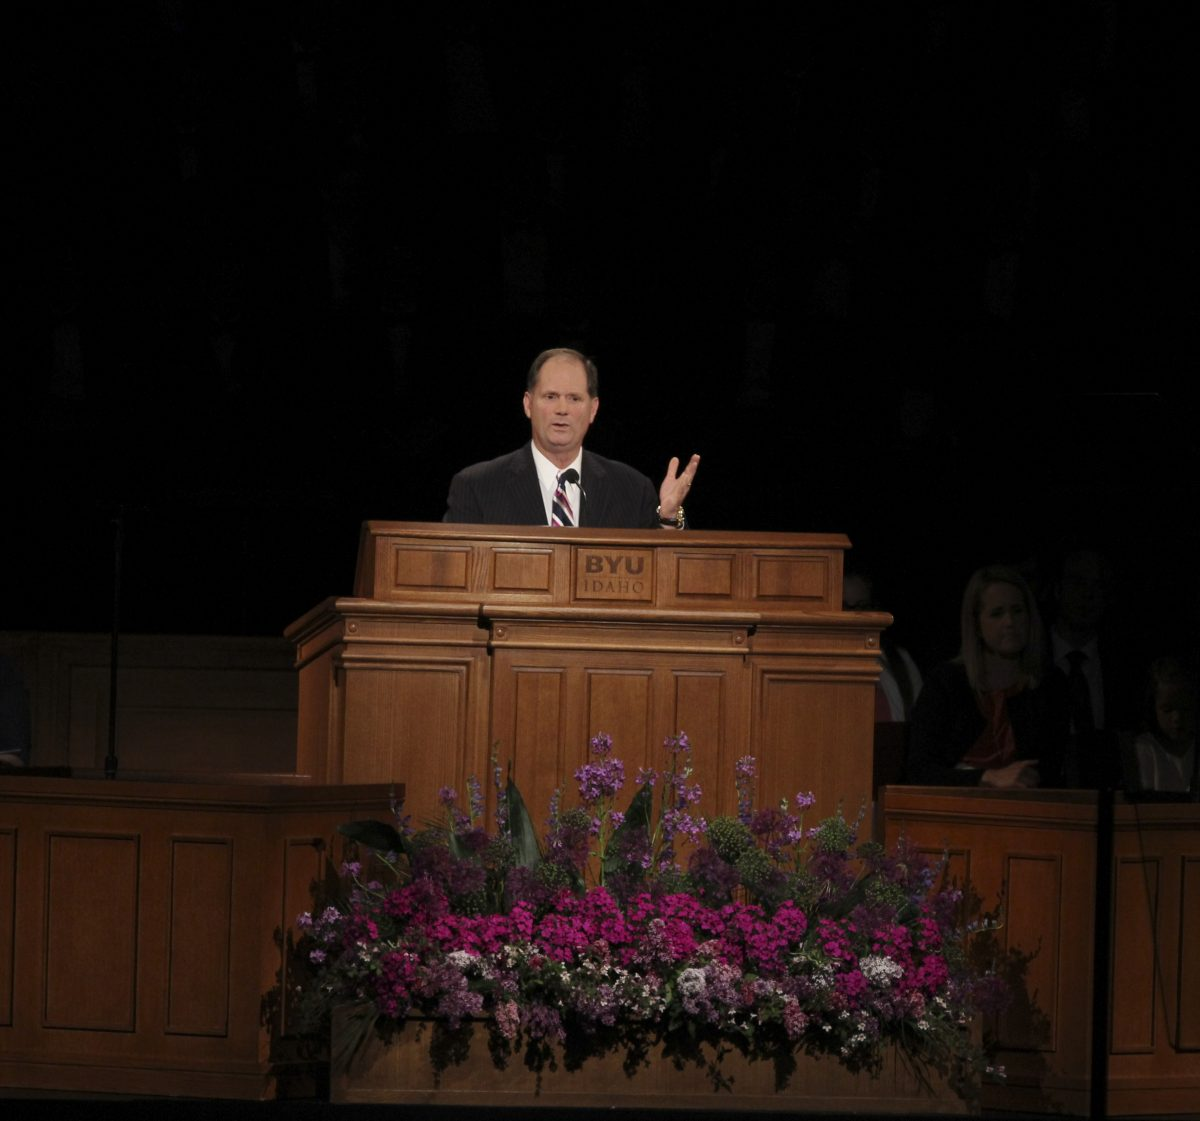 Devotional with Elder Von G. Keetch: Having empathy while defending the faith